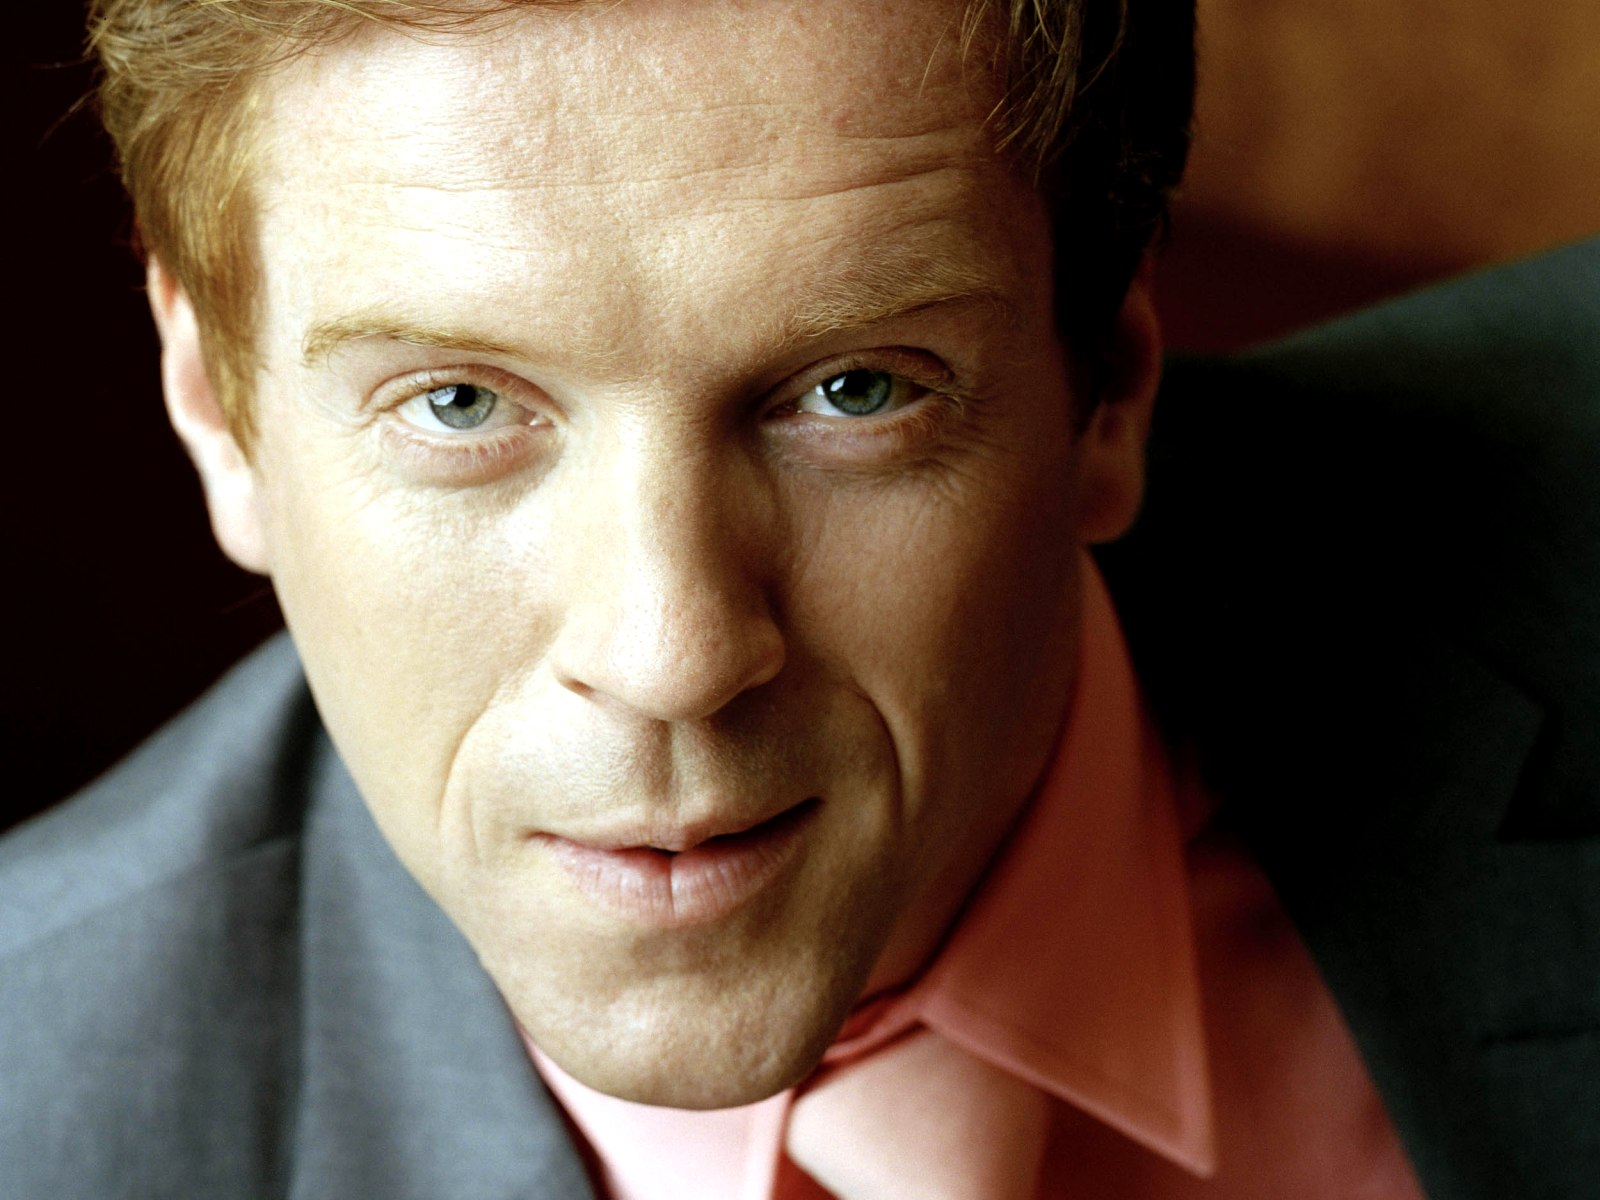 damian lewis face wallpaper 58405